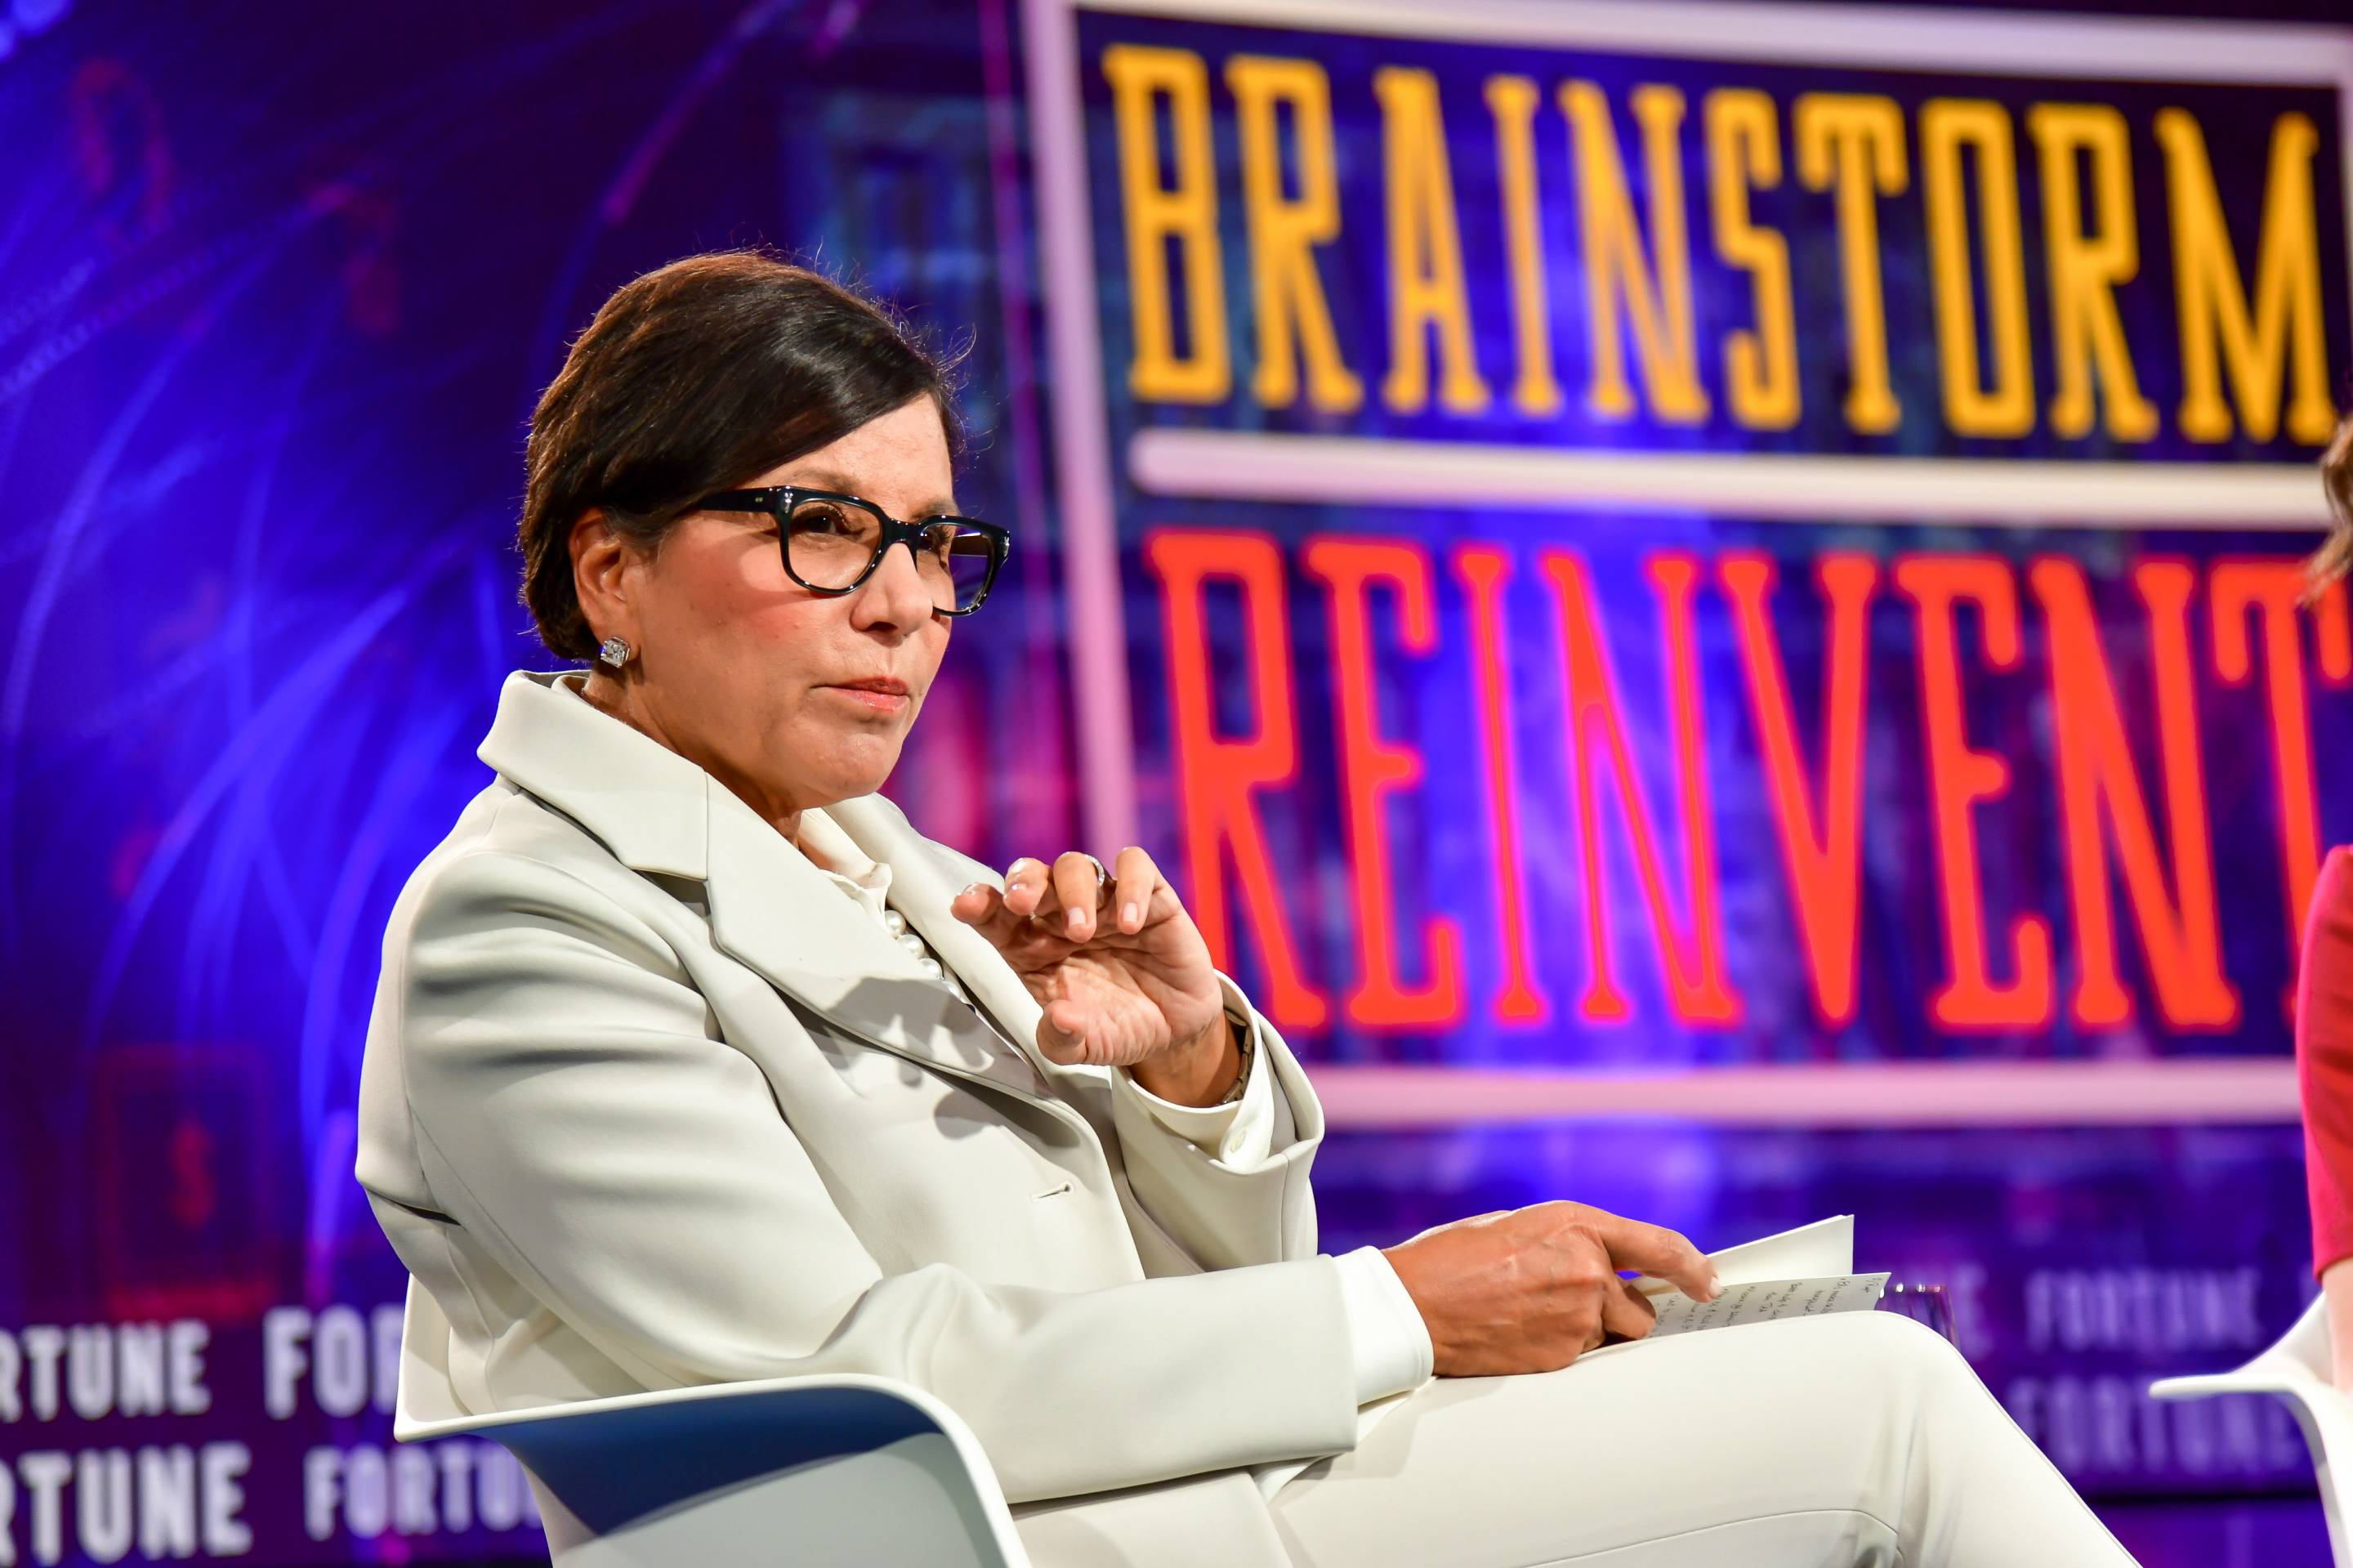 Obama administration Commerce Secretary Penny Pritzker says there is work in the future—we just need to adapt.